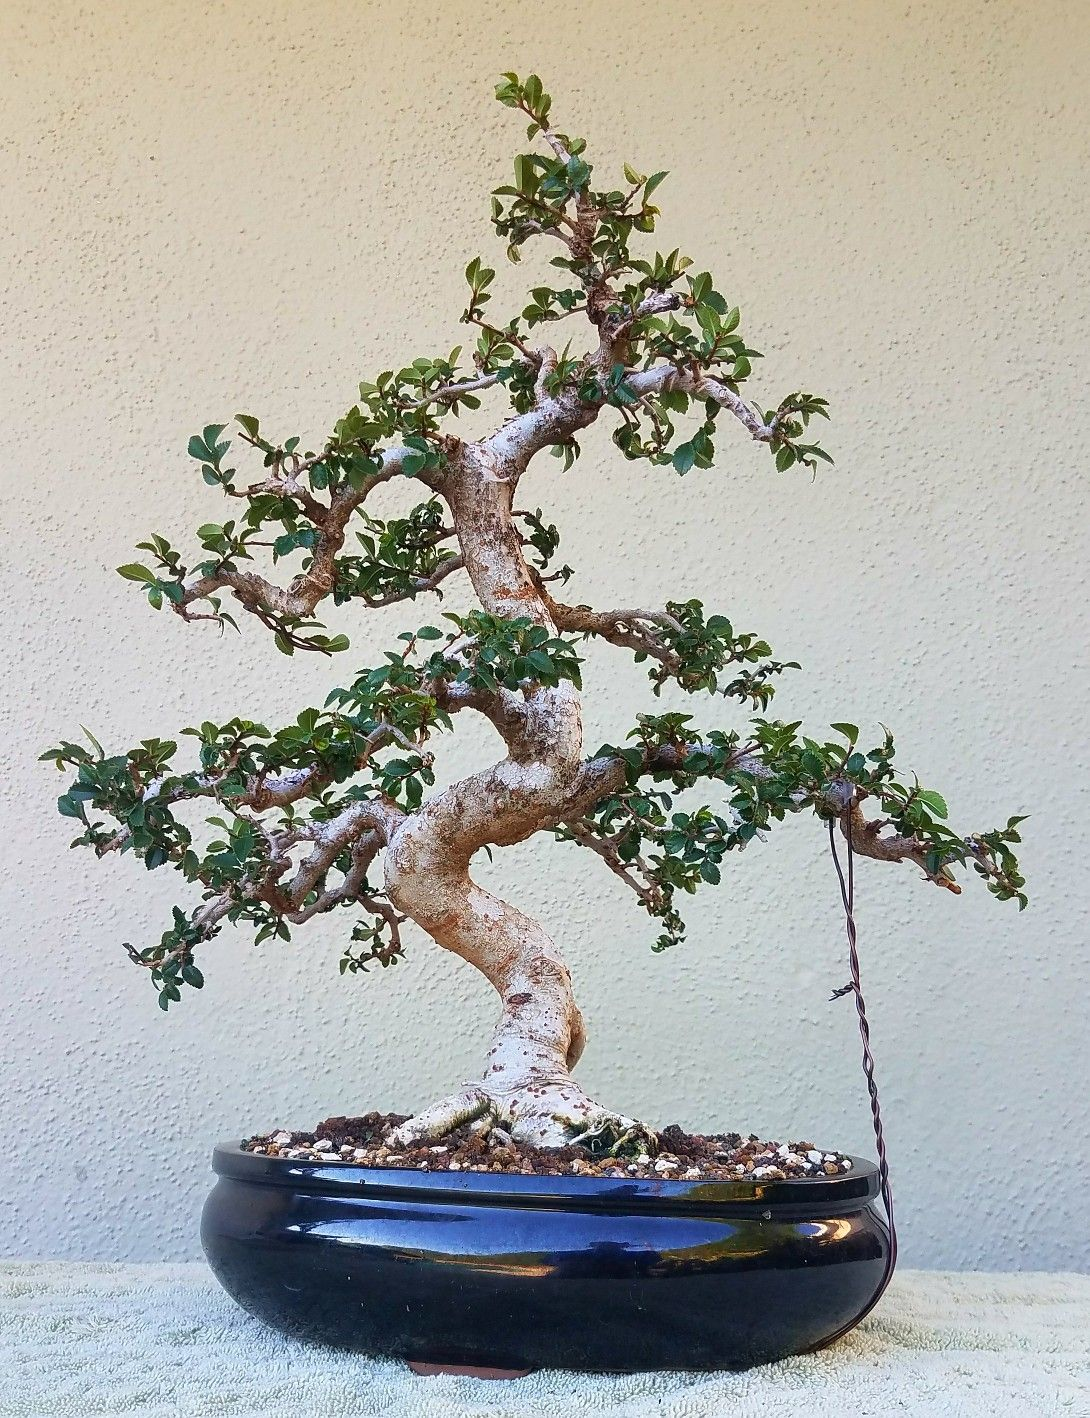 Stupendous Picture 5 I Did Some Pruning And Wiring On My Chinese Elm Bonsai Wiring Digital Resources Sapebecompassionincorg